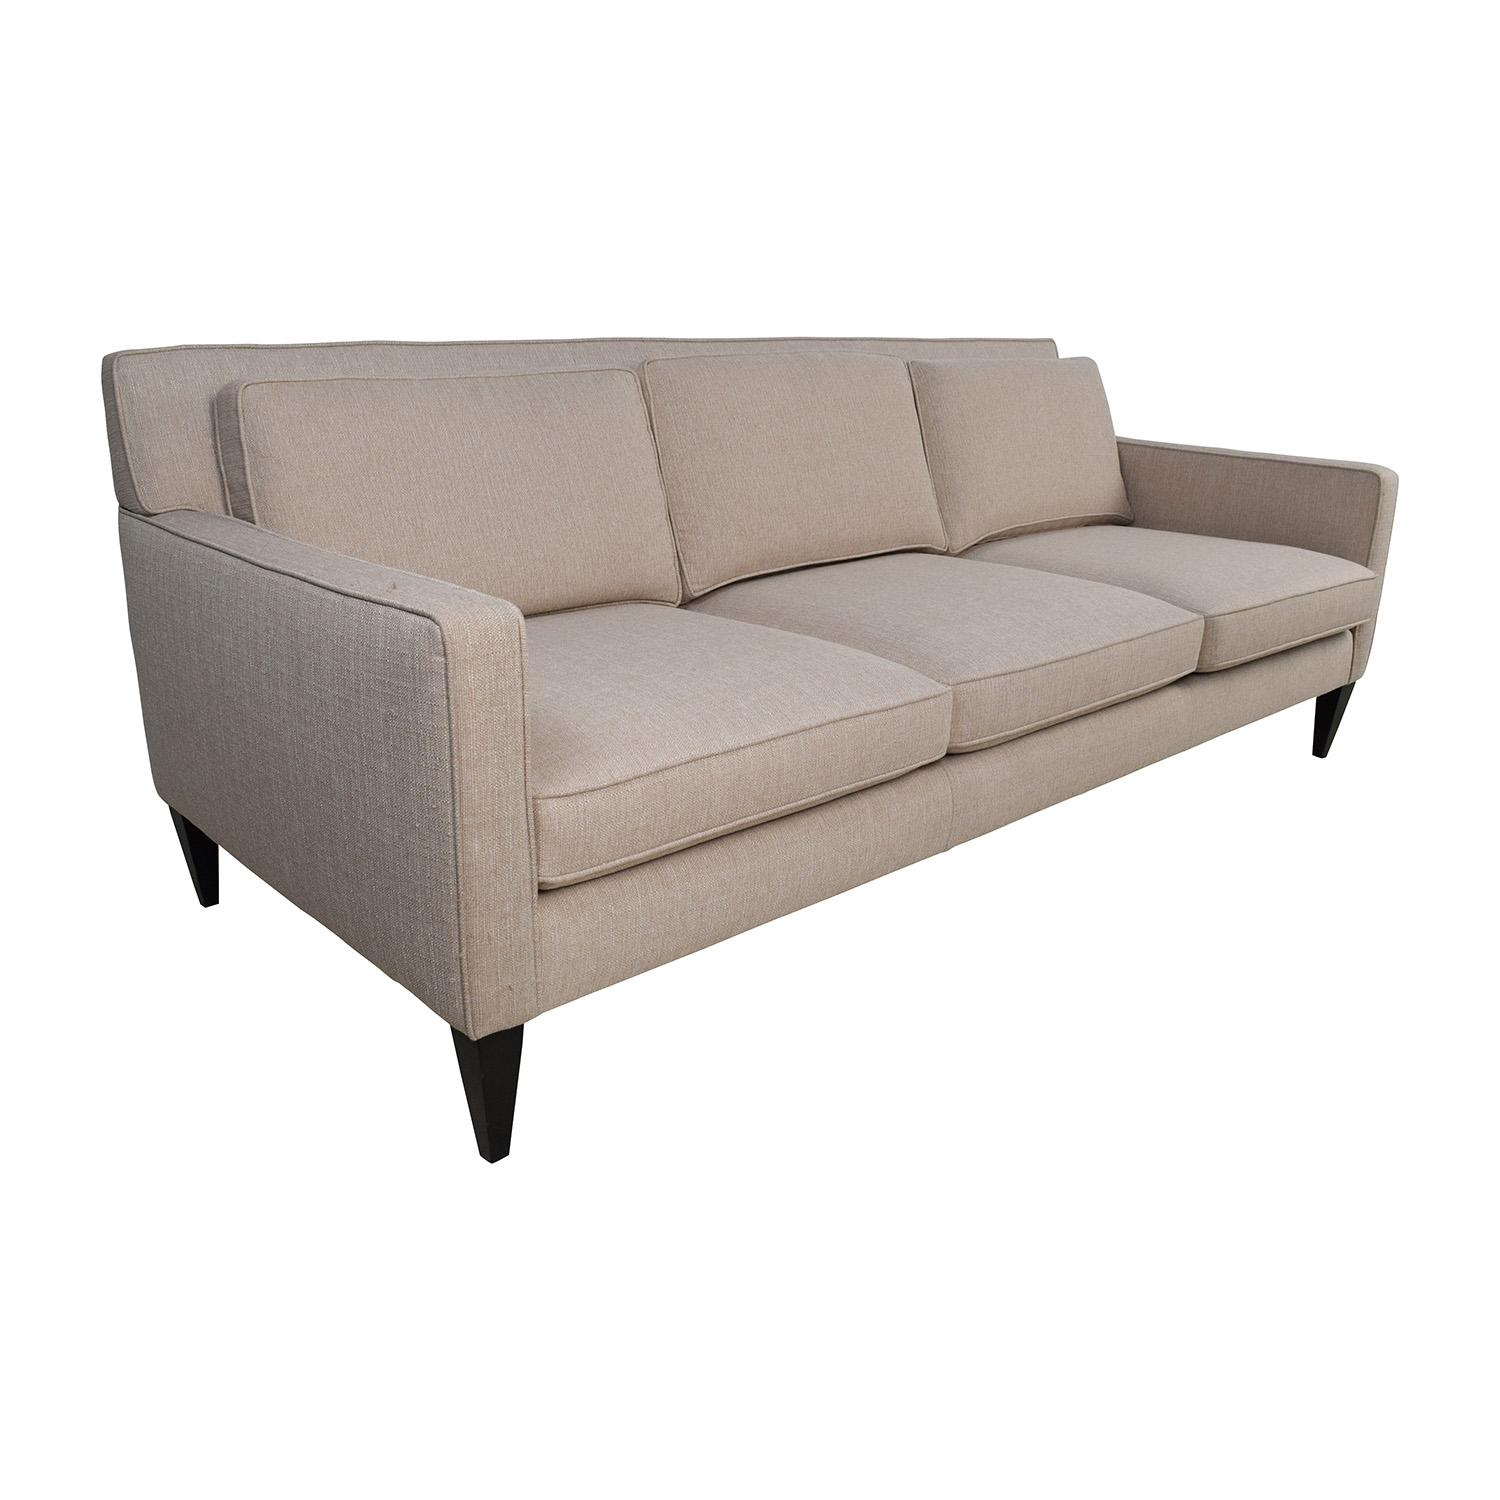 69% Off – Crate And Barrel Crate & Barrel Rochelle Desert Sofa / Sofas Within Crate And Barrel Futon Sofas (Image 3 of 20)